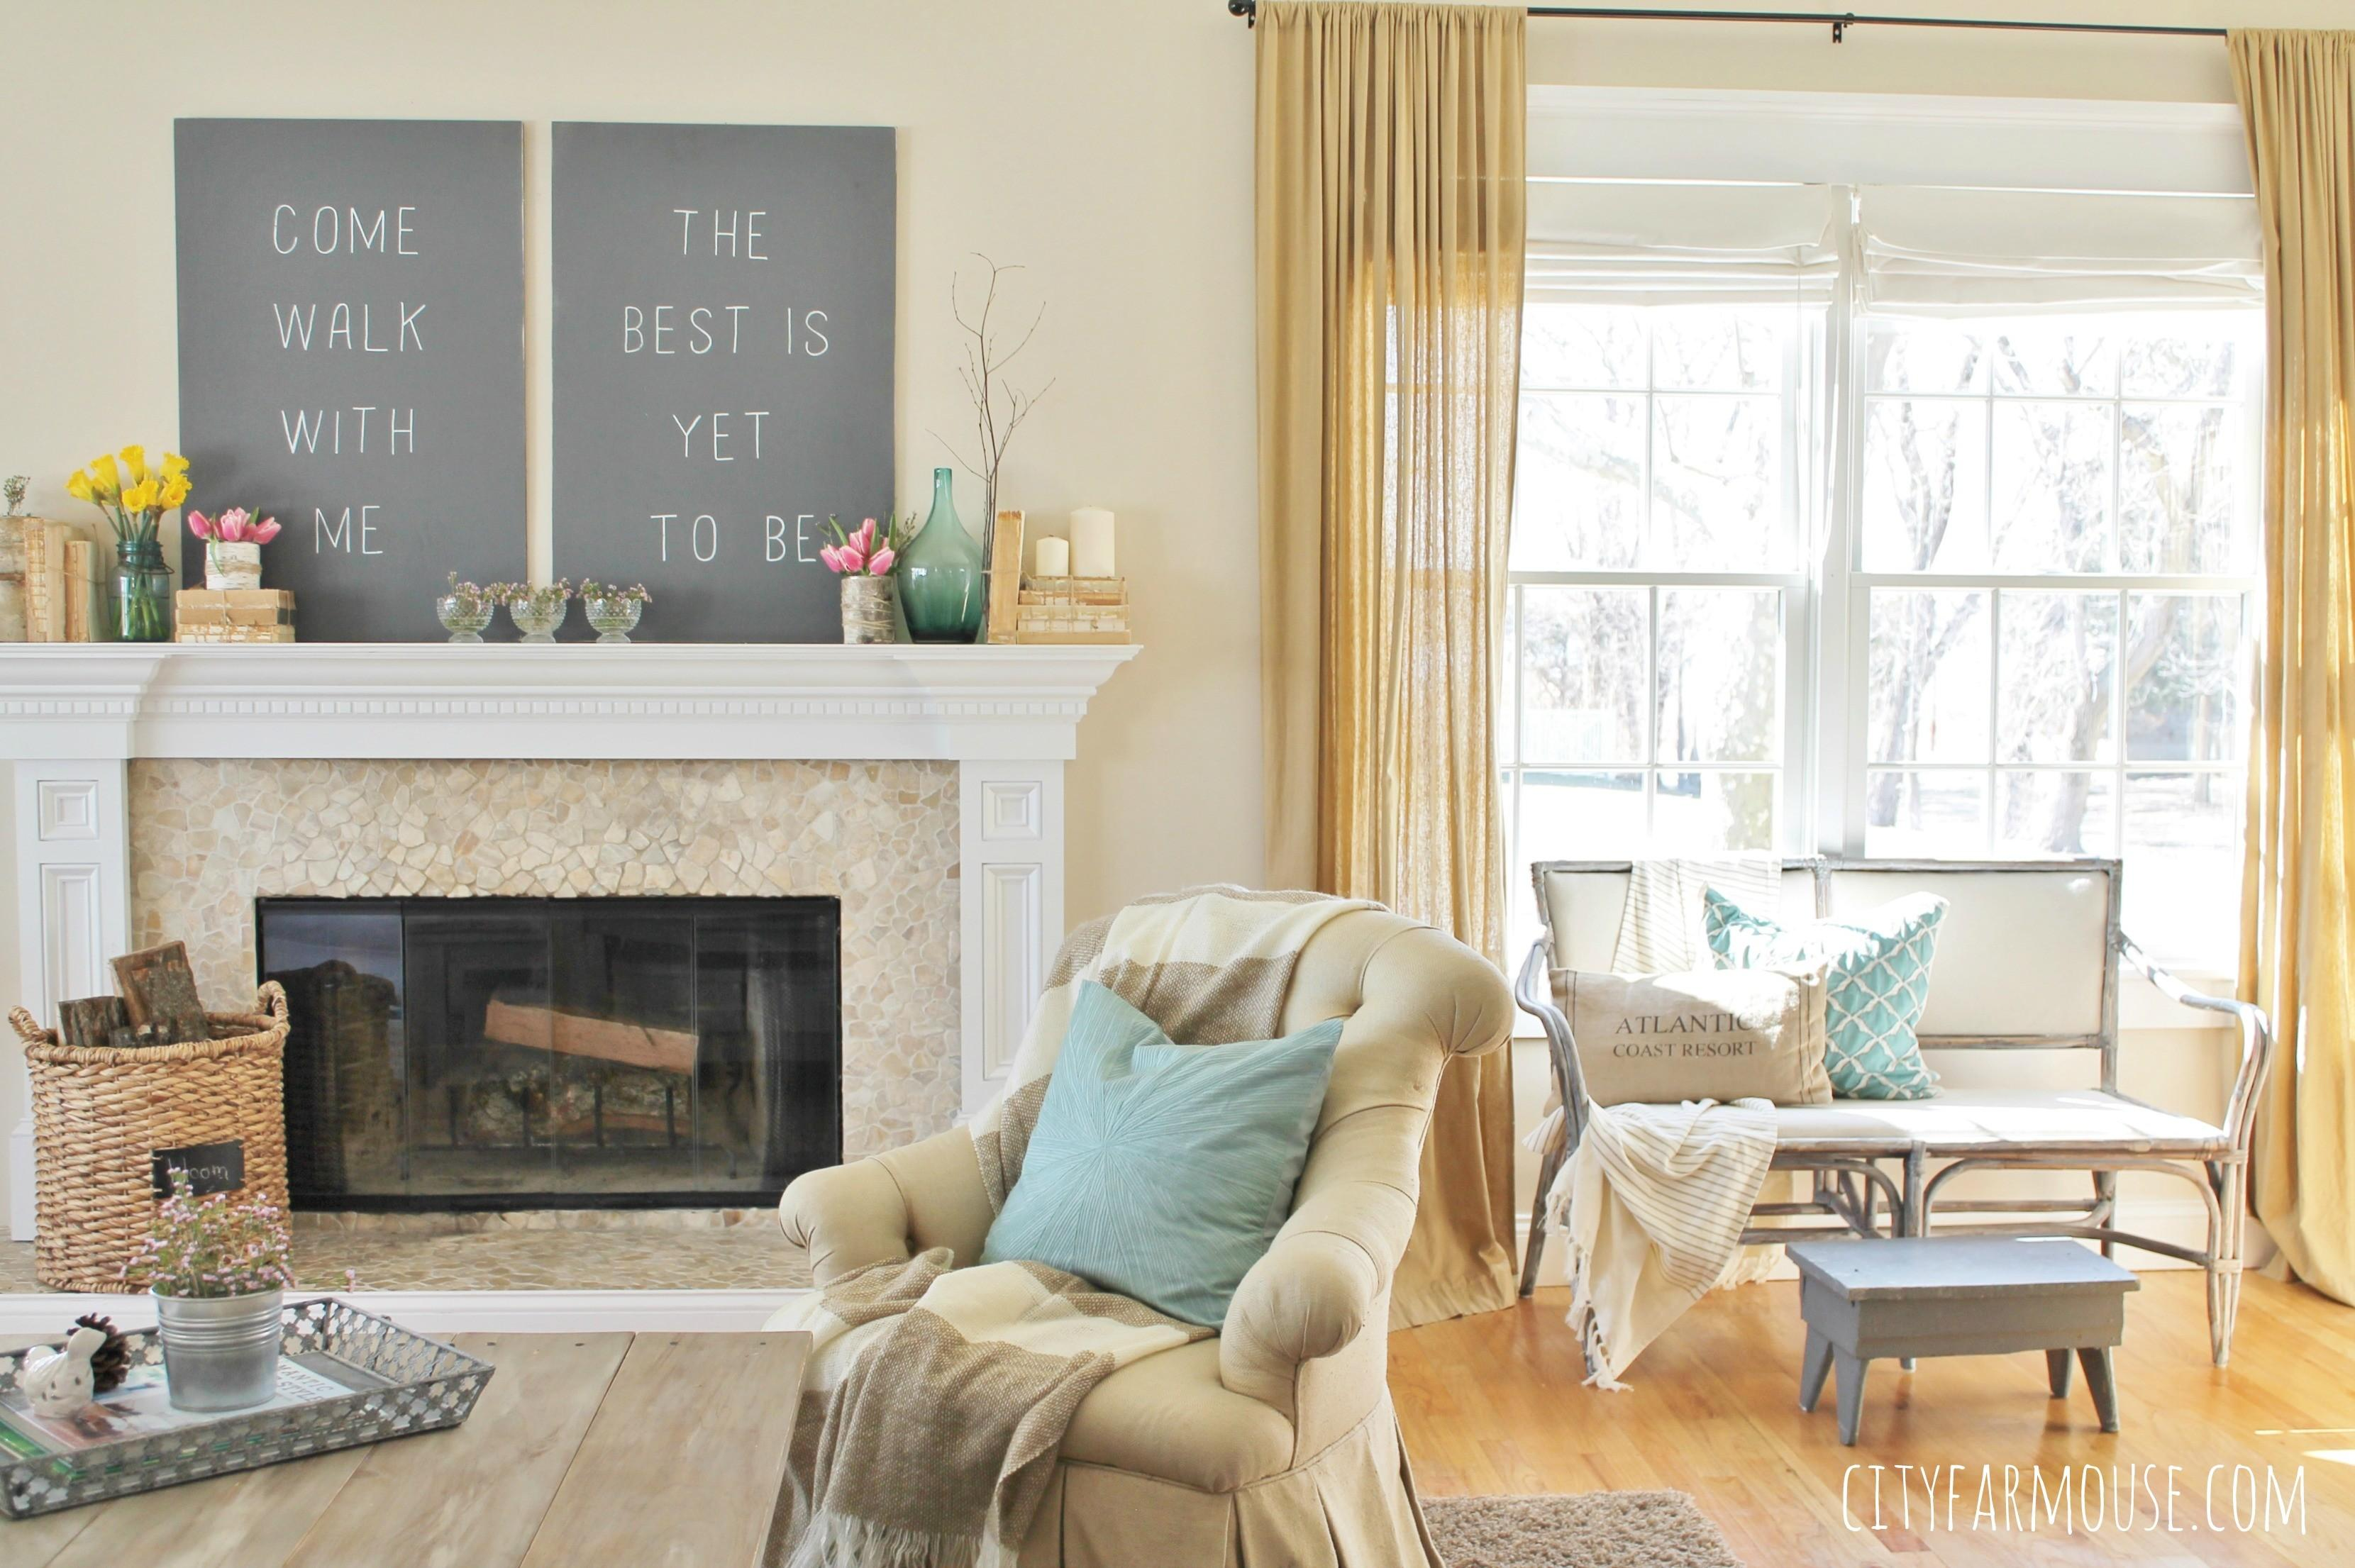 Eclectic Decorating Style Home Decor Vintage Modern Look